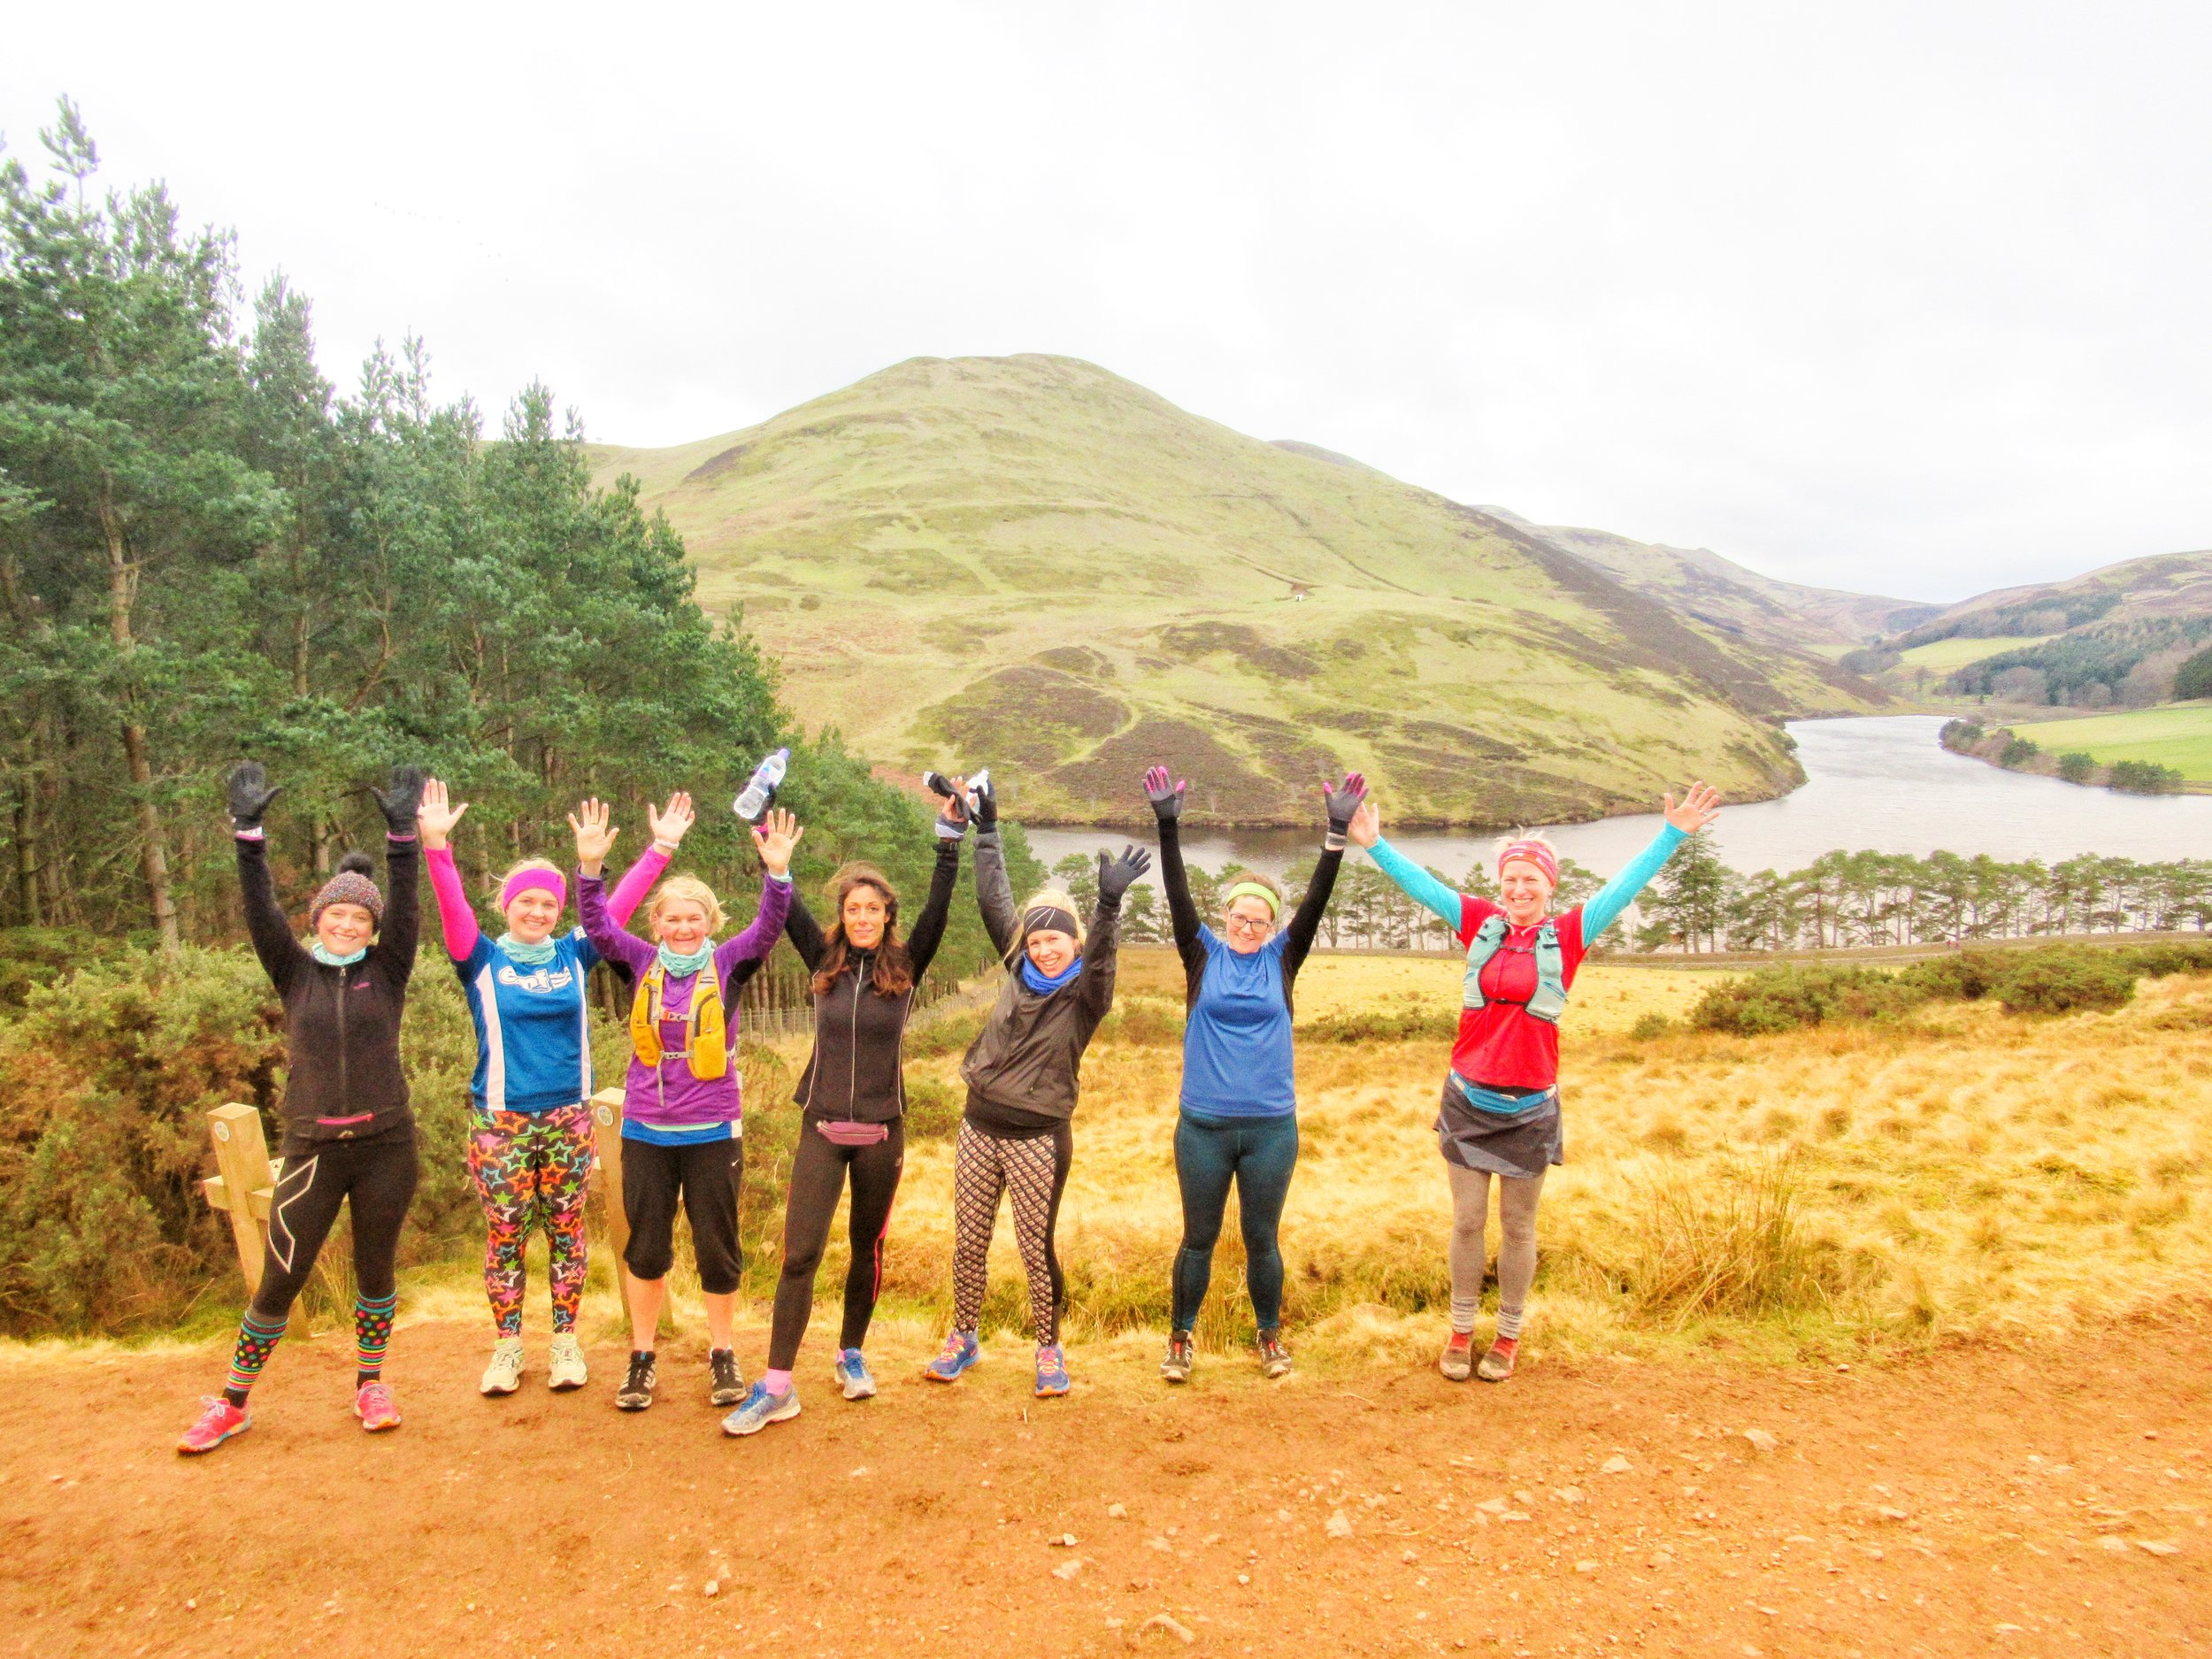 Tracy, Gemma and Angela on the Pentland Taster Running Tour, along with other Run the Sighters Elise, Roisin, Laura and Gina